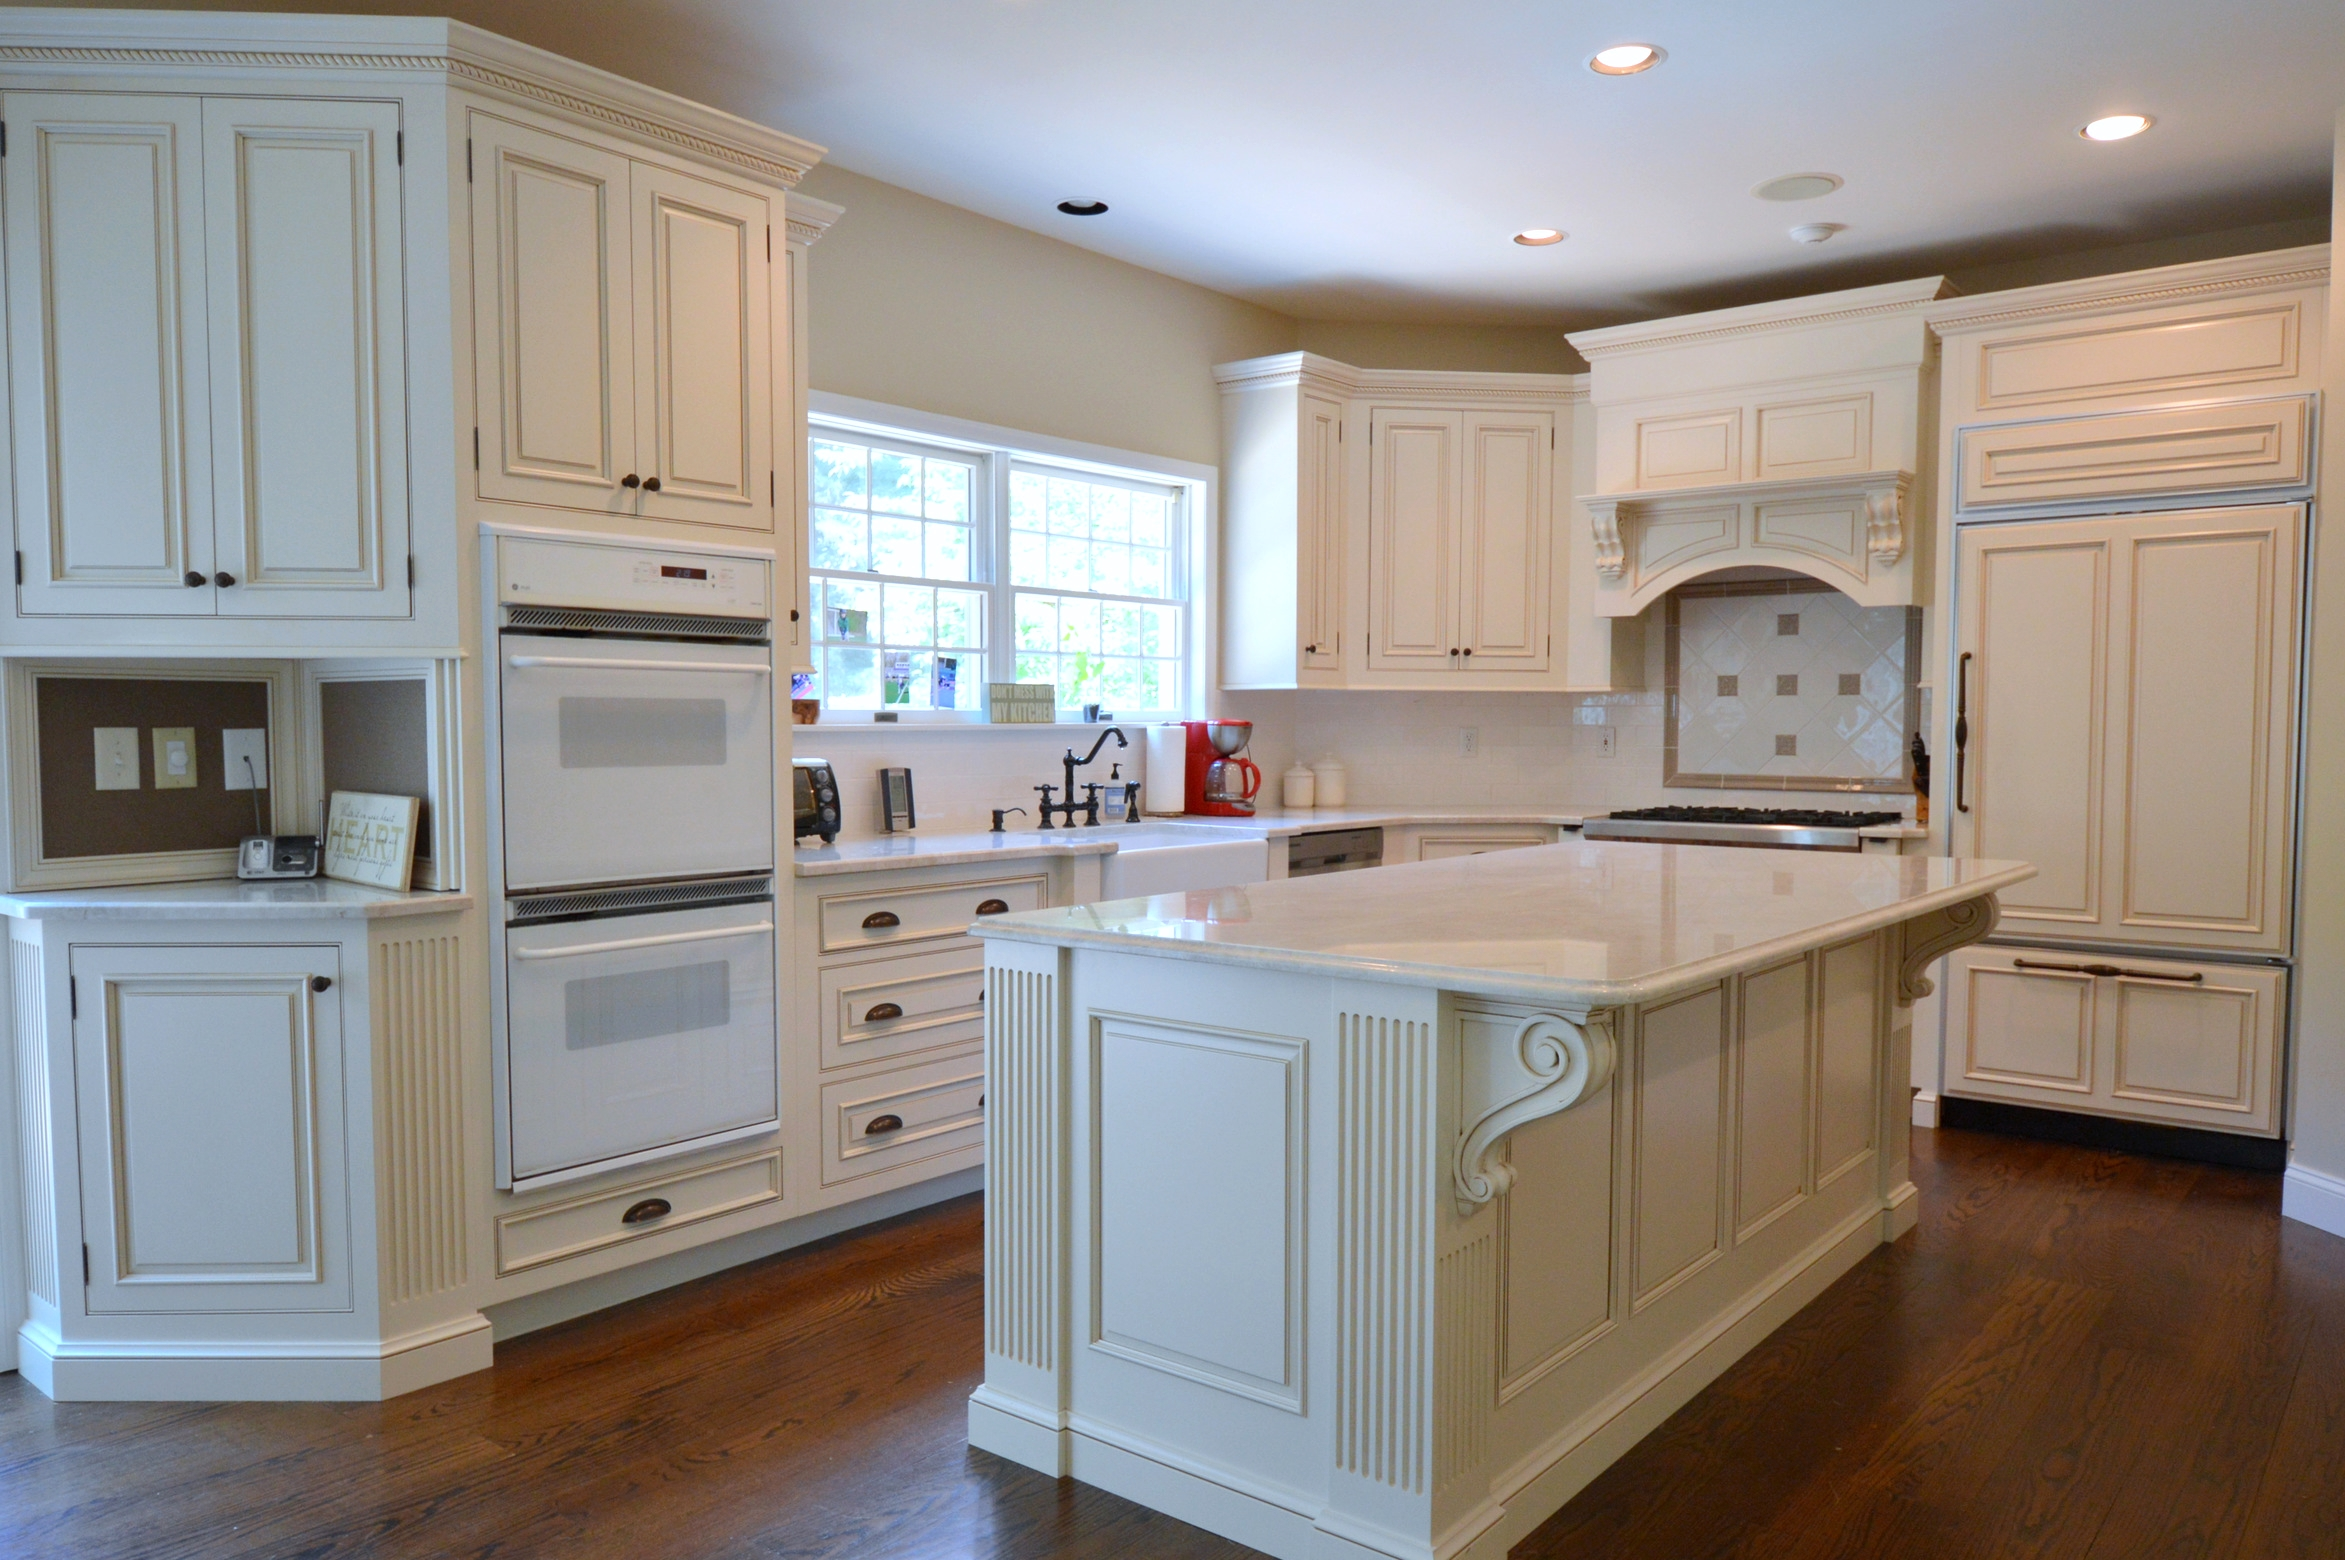 glazed kitchen cabinets small island with storage remodeling tuscan custom ackley cabinet llc antique white cross river ny